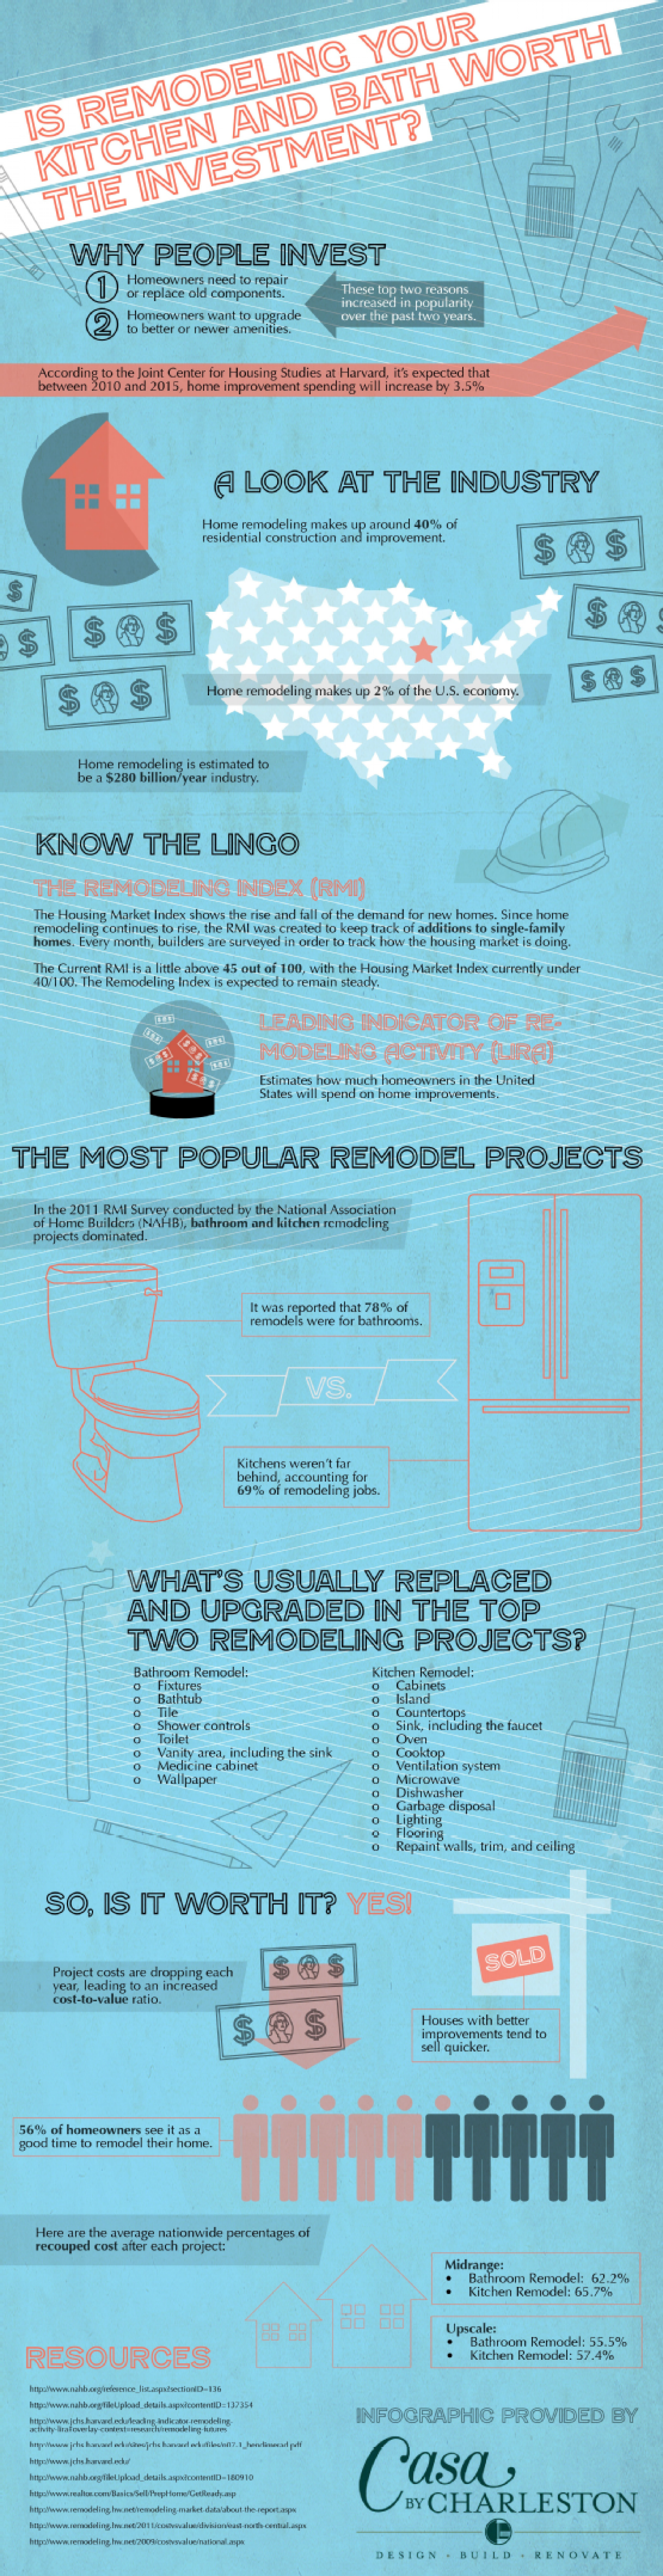 New Kitchens and Baths: Are They Worth The Investment? Infographic